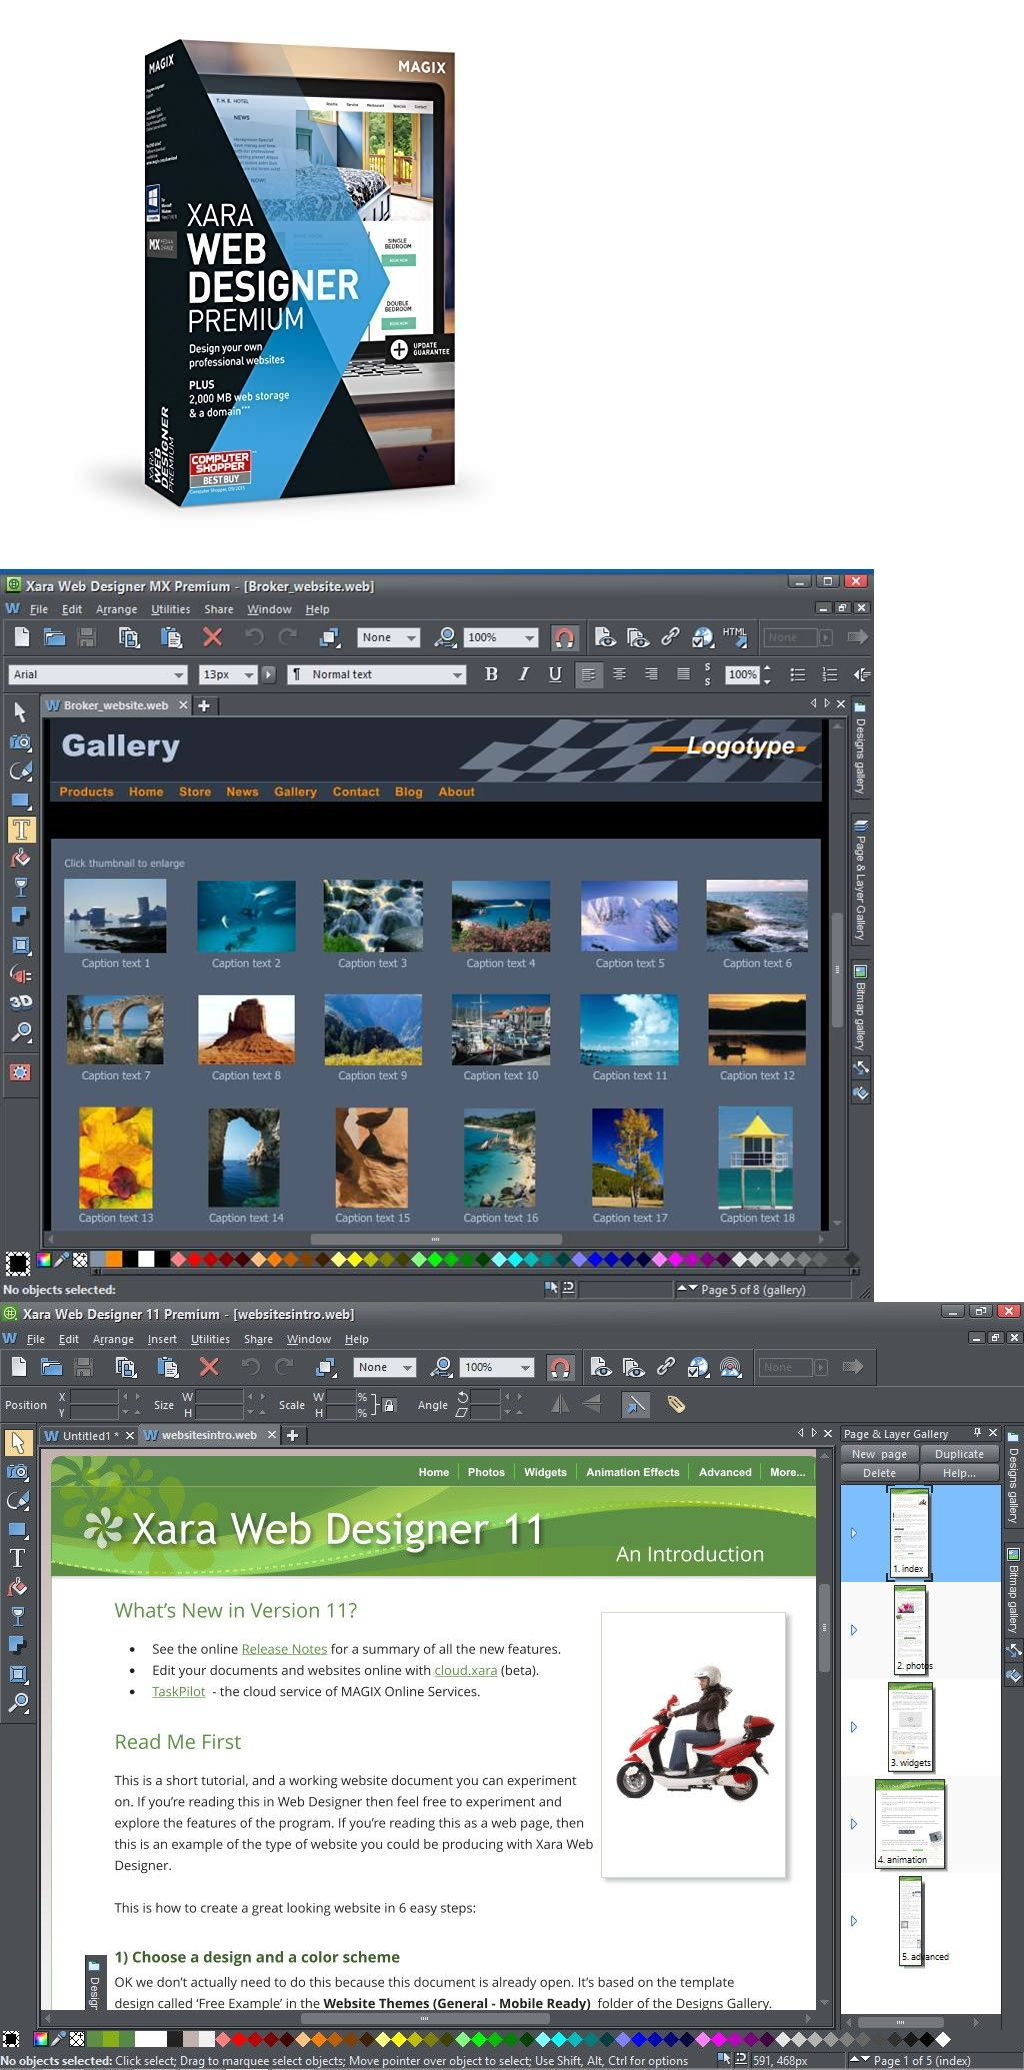 Software 40134 Xara Web Designer Premium 16 Digital Download Buy It Now Only 10 On Ebay Software Designer Web Design Digital Download Wholesale Lots